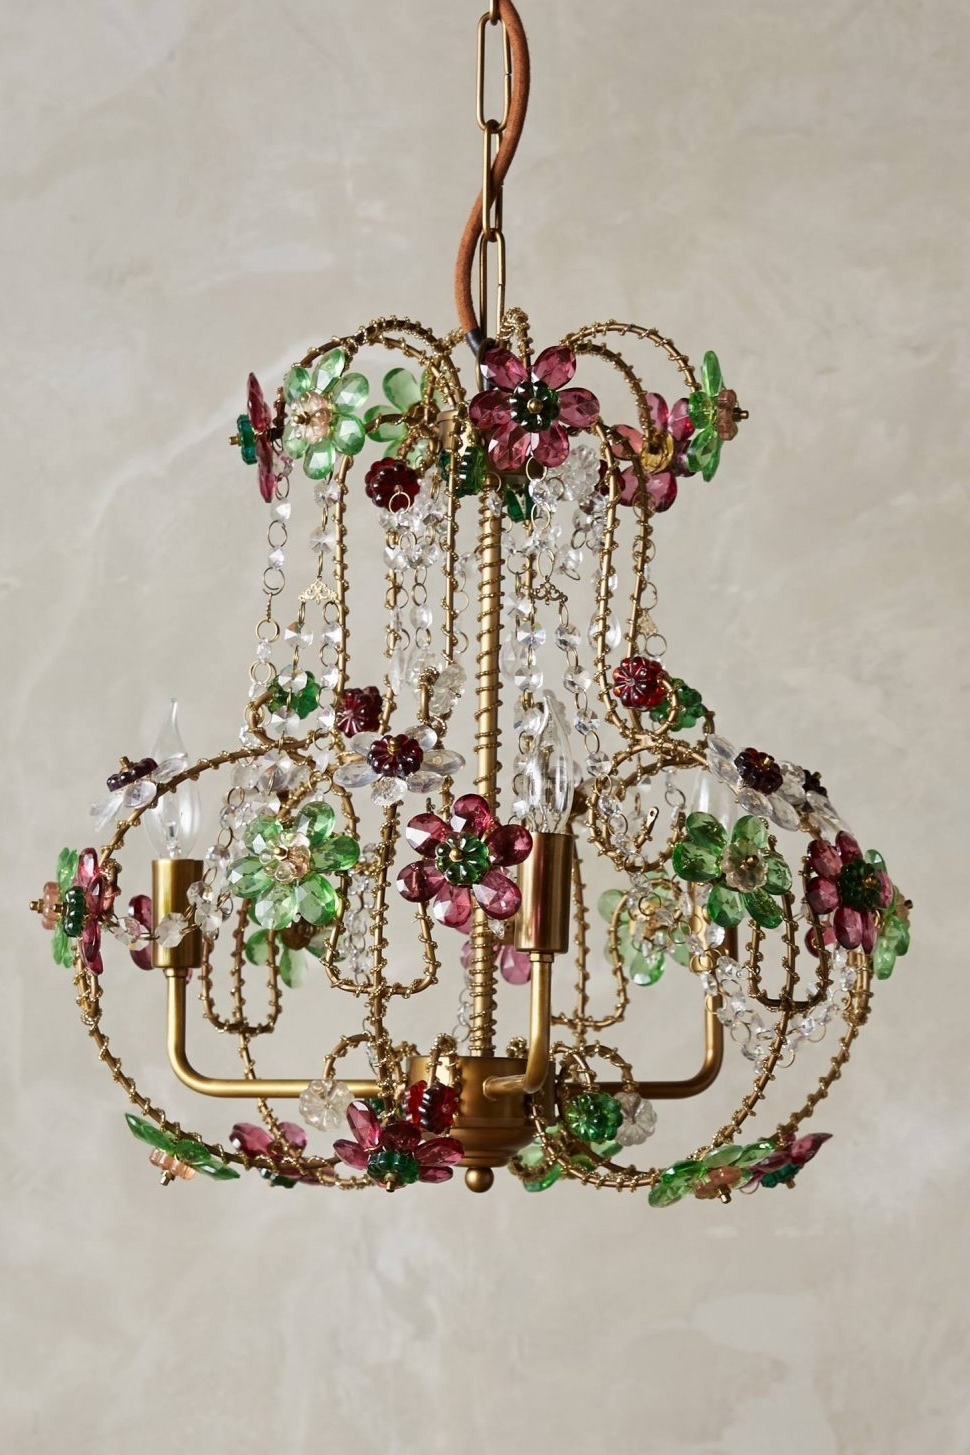 Coloured Glass Chandelier Within Most Current Chandeliers Design : Wonderful Colorful Chandeliers Laurel Loves Via (View 11 of 20)